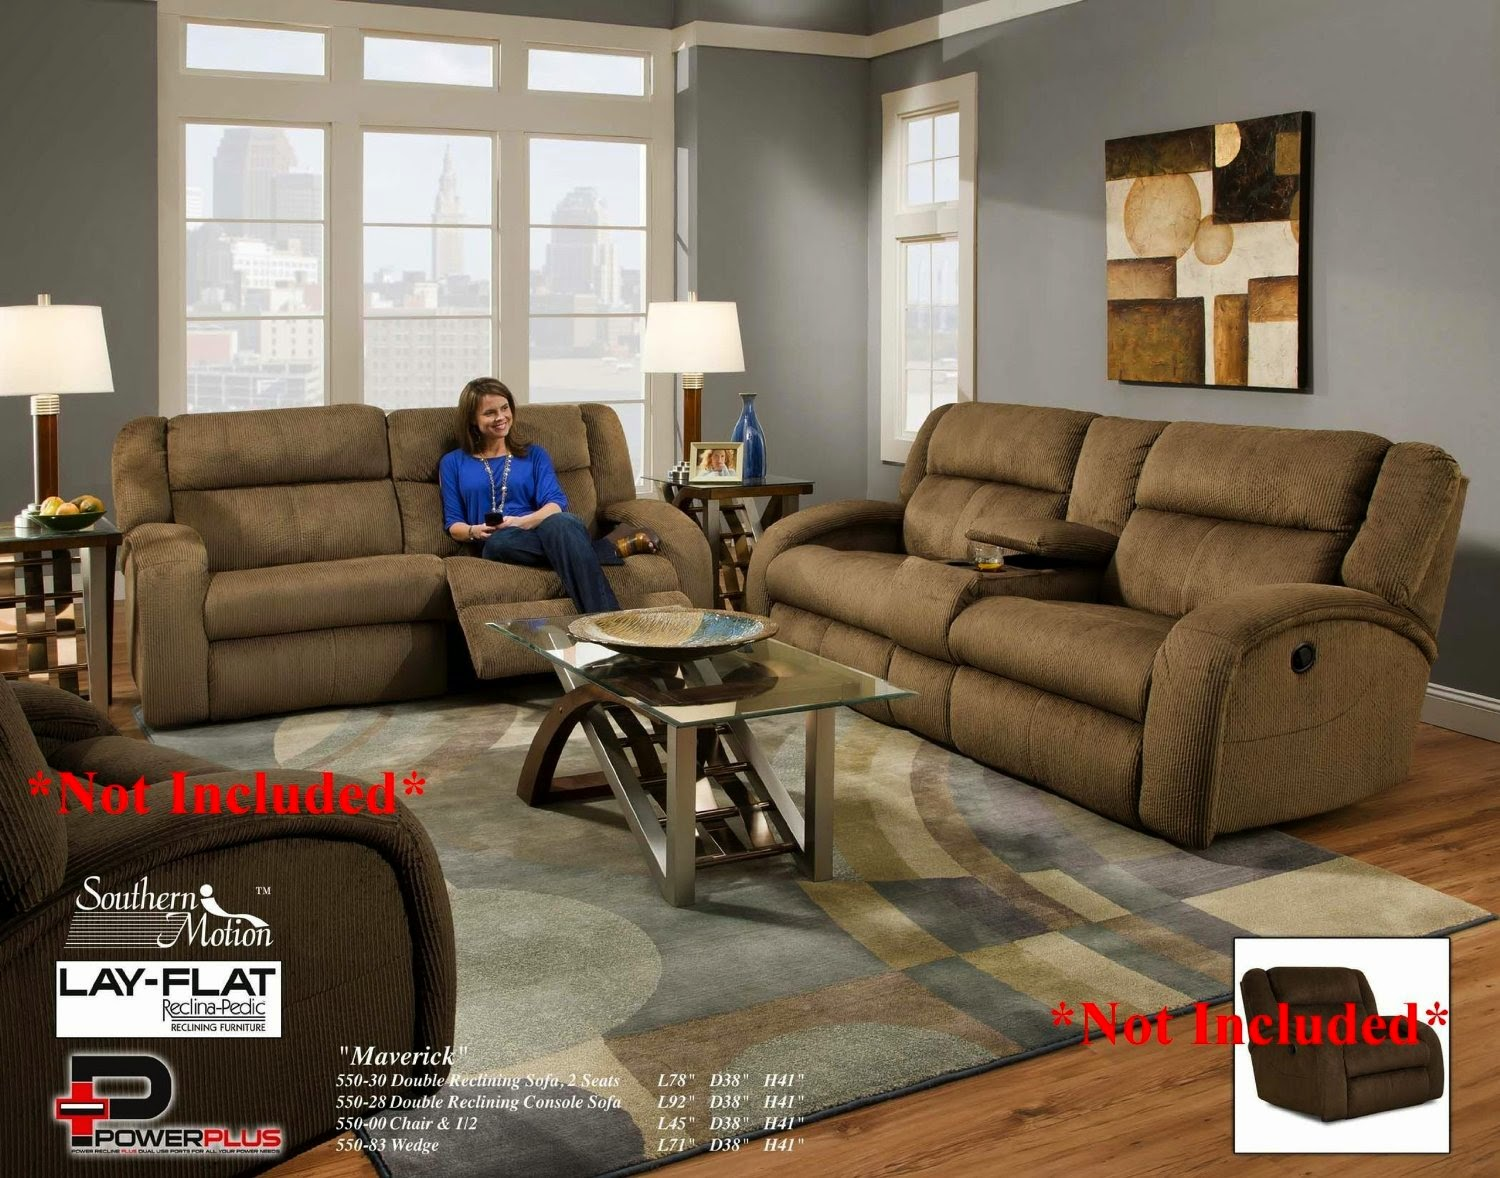 High Quality Southern Motion Maverick Southern Motion Reclining Sofa